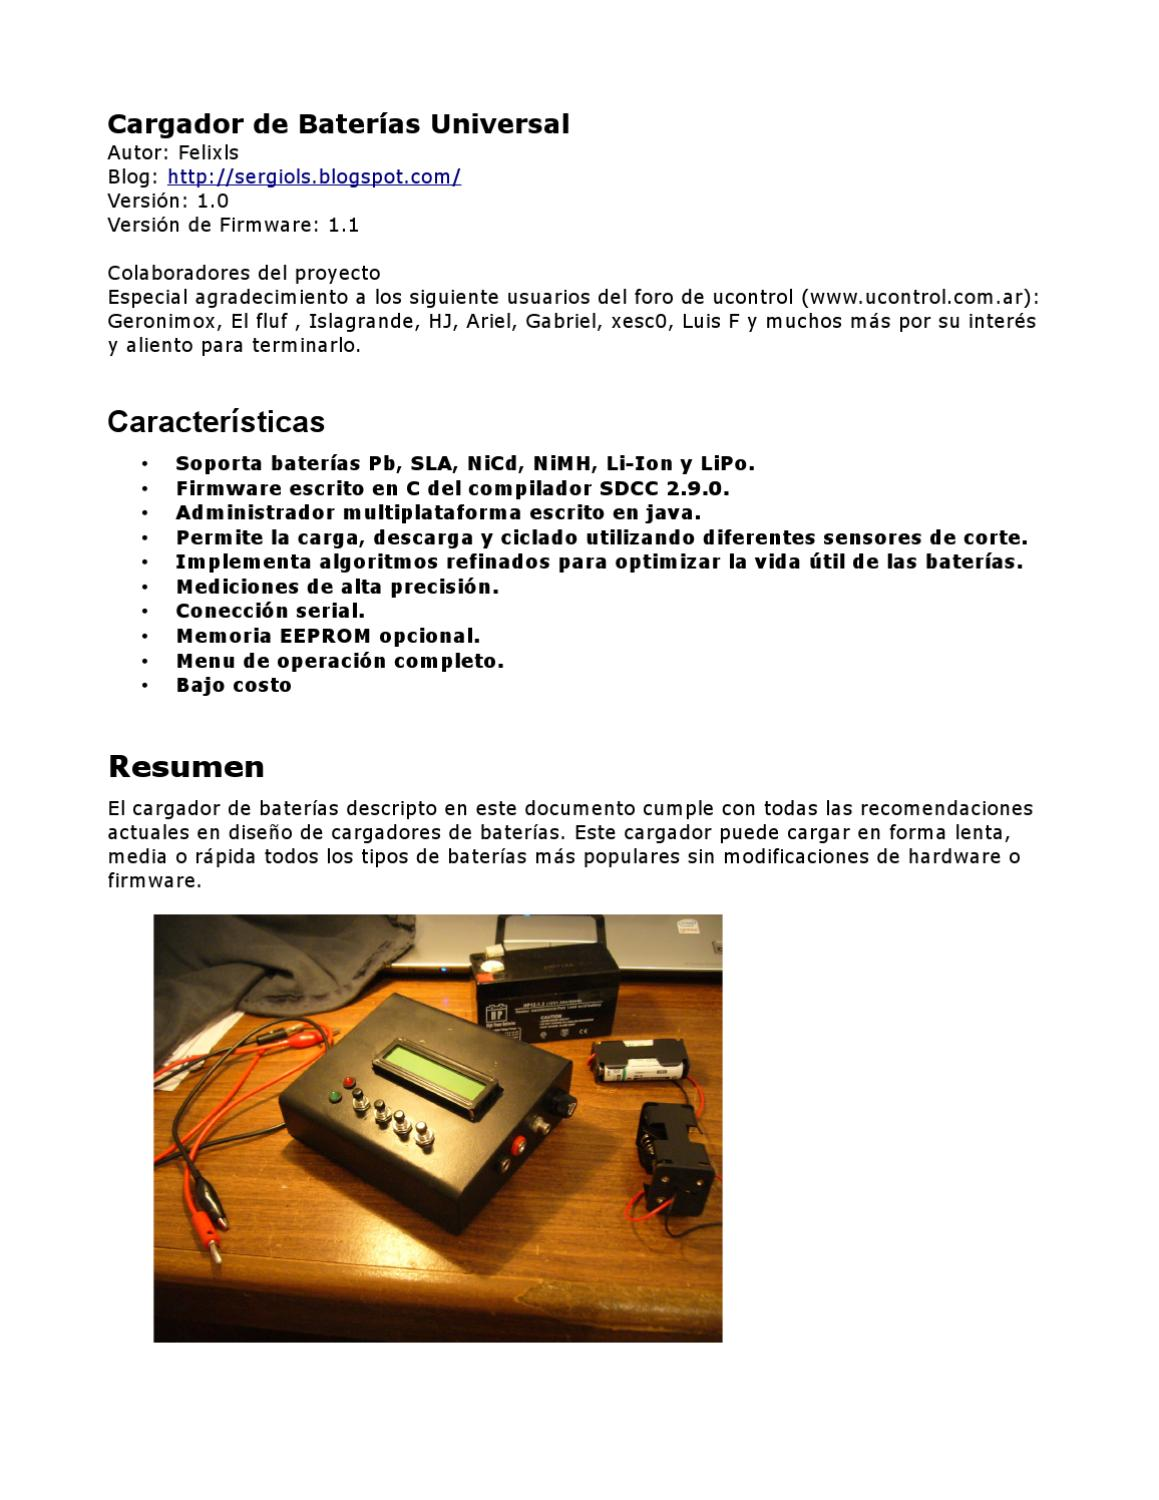 Universal Battery Charger By Felixls Felix Issuu Nicad Fet Irf9530